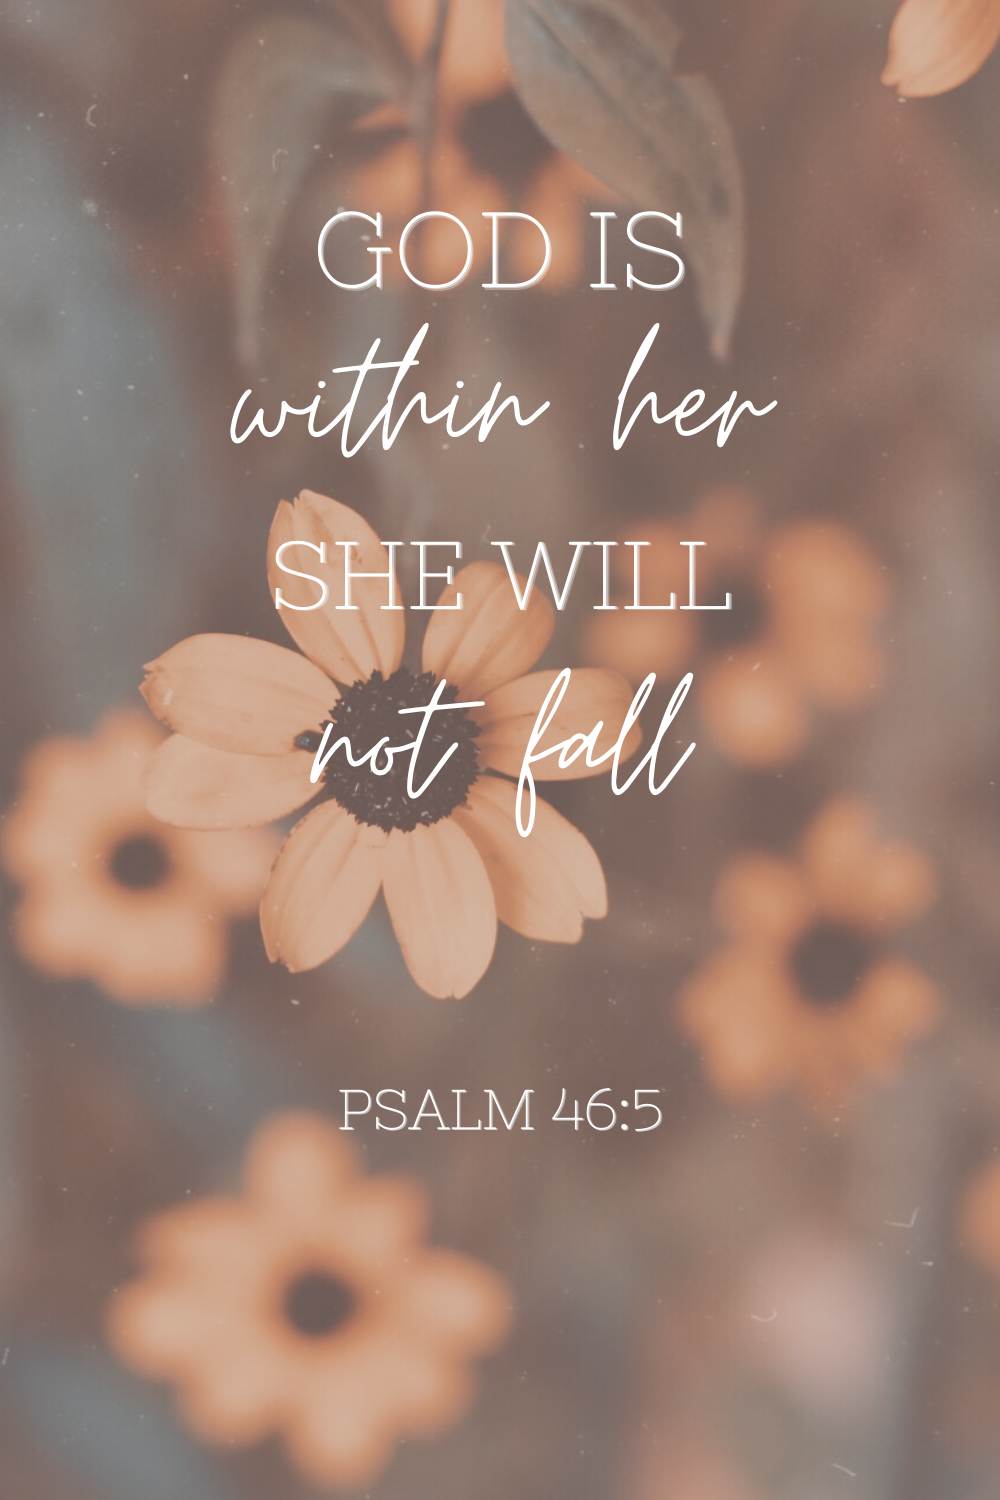 Psalm 46:5 God is within her she will not fall  Bible Verse iPhone Wallpaper  #bible #devotion #life